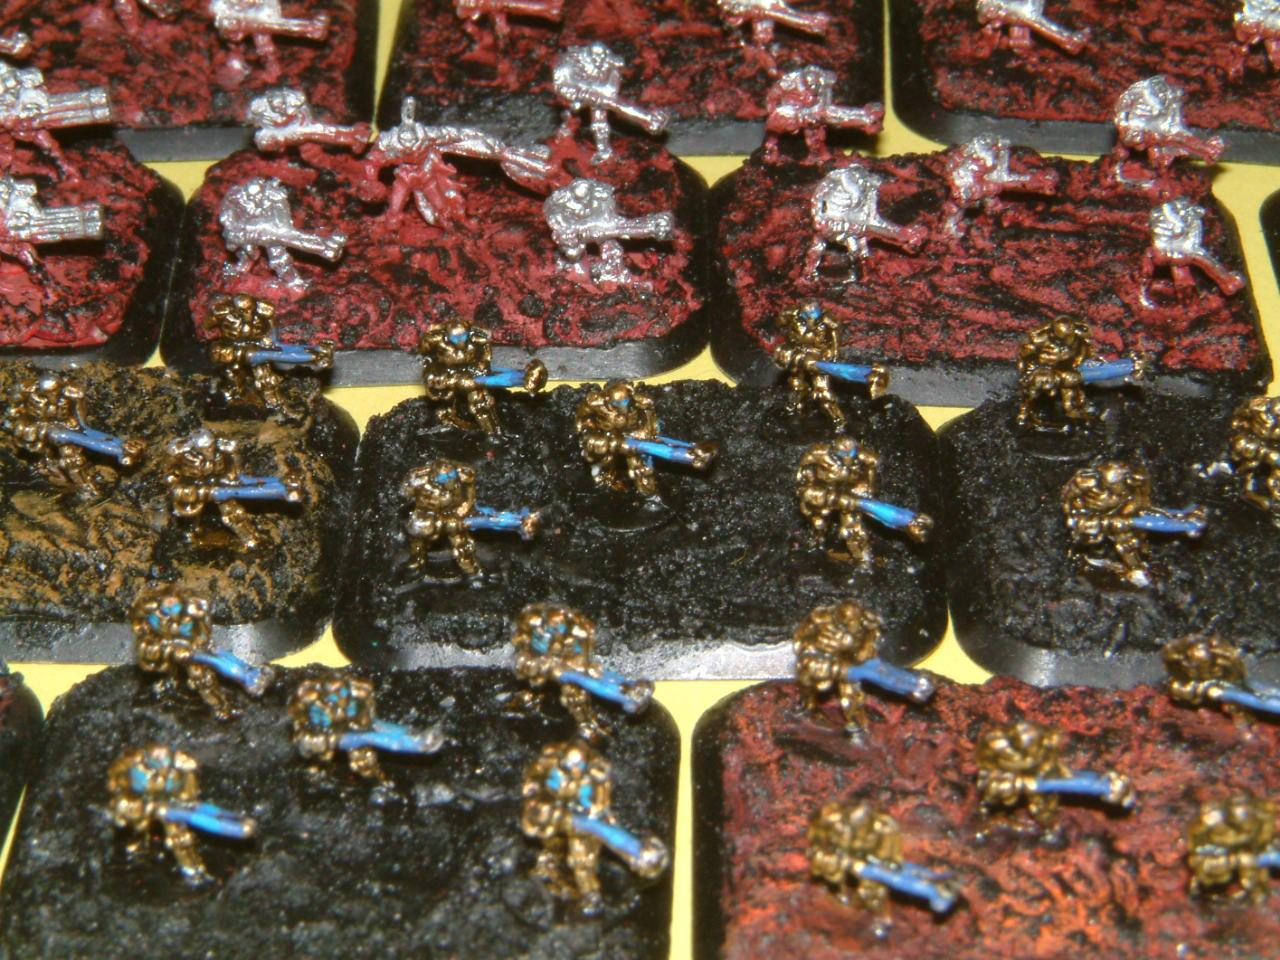 Army, Conversion, Cool, Dead, Epic, Extinctor, Gauss, Lord, Necrons, Old, Oldhammer, Quest, Rogue, Star, Style, Trader, Walking, Warriors